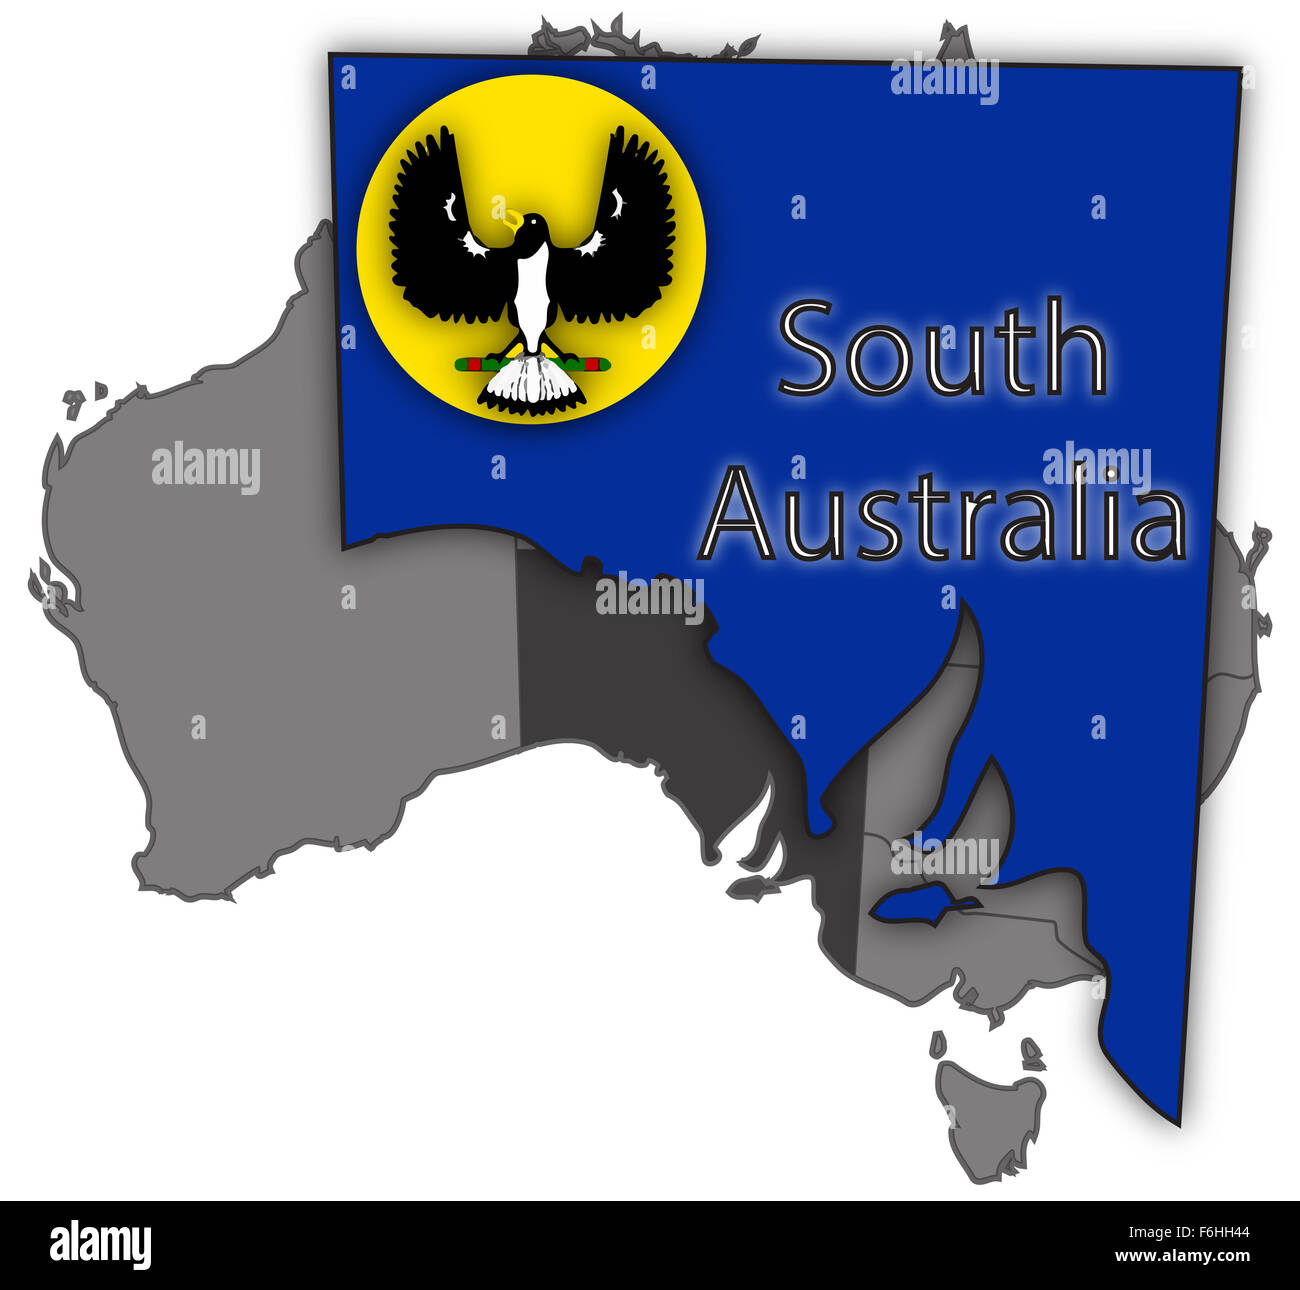 A South Australia map and flag isolated on a white background - Stock Image